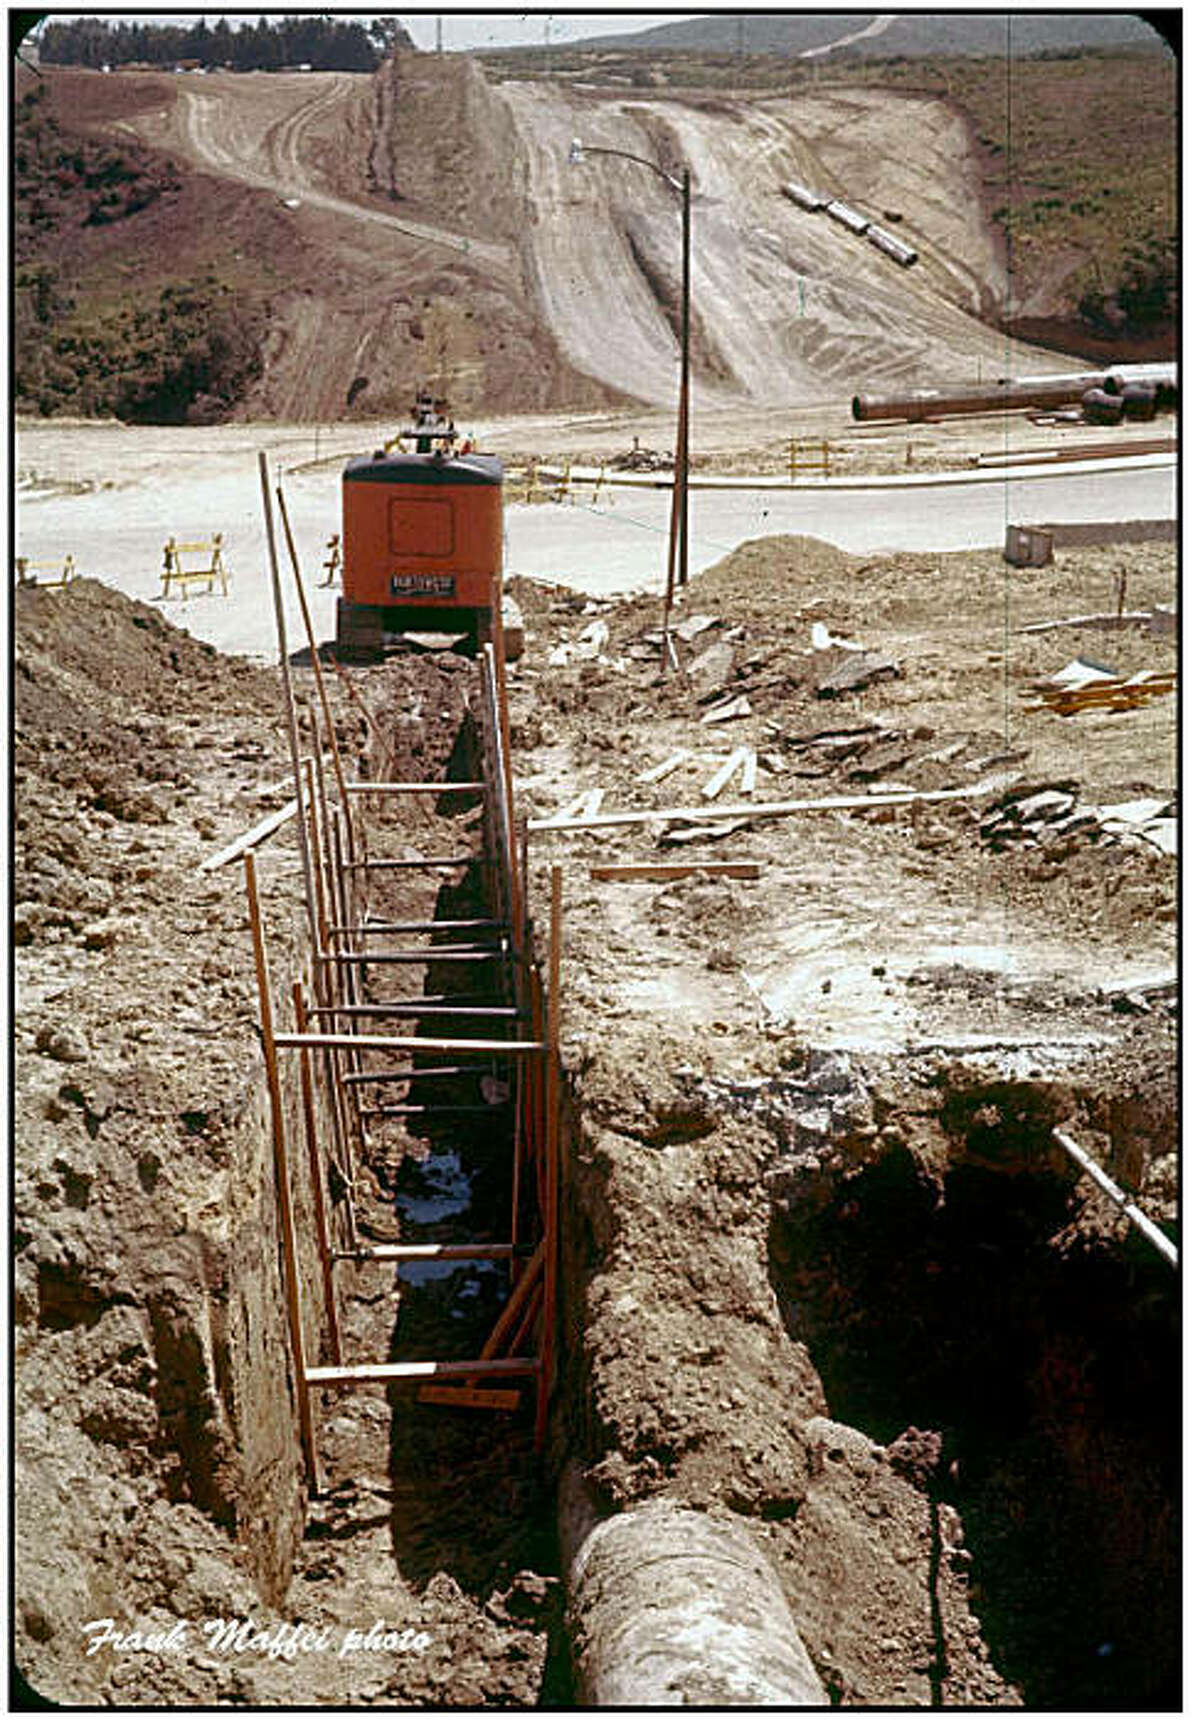 Undated photo of installation of the San Bruno pipeline. Attributed to Frank Maffei, a former Pacific Gas and Electric Co. employee. (He's still alive.) Contained in National Transportation Safety Board document release today. http://www.ntsb.gov/Dockets/PipeLine/DCA10MP008/459127.pdf